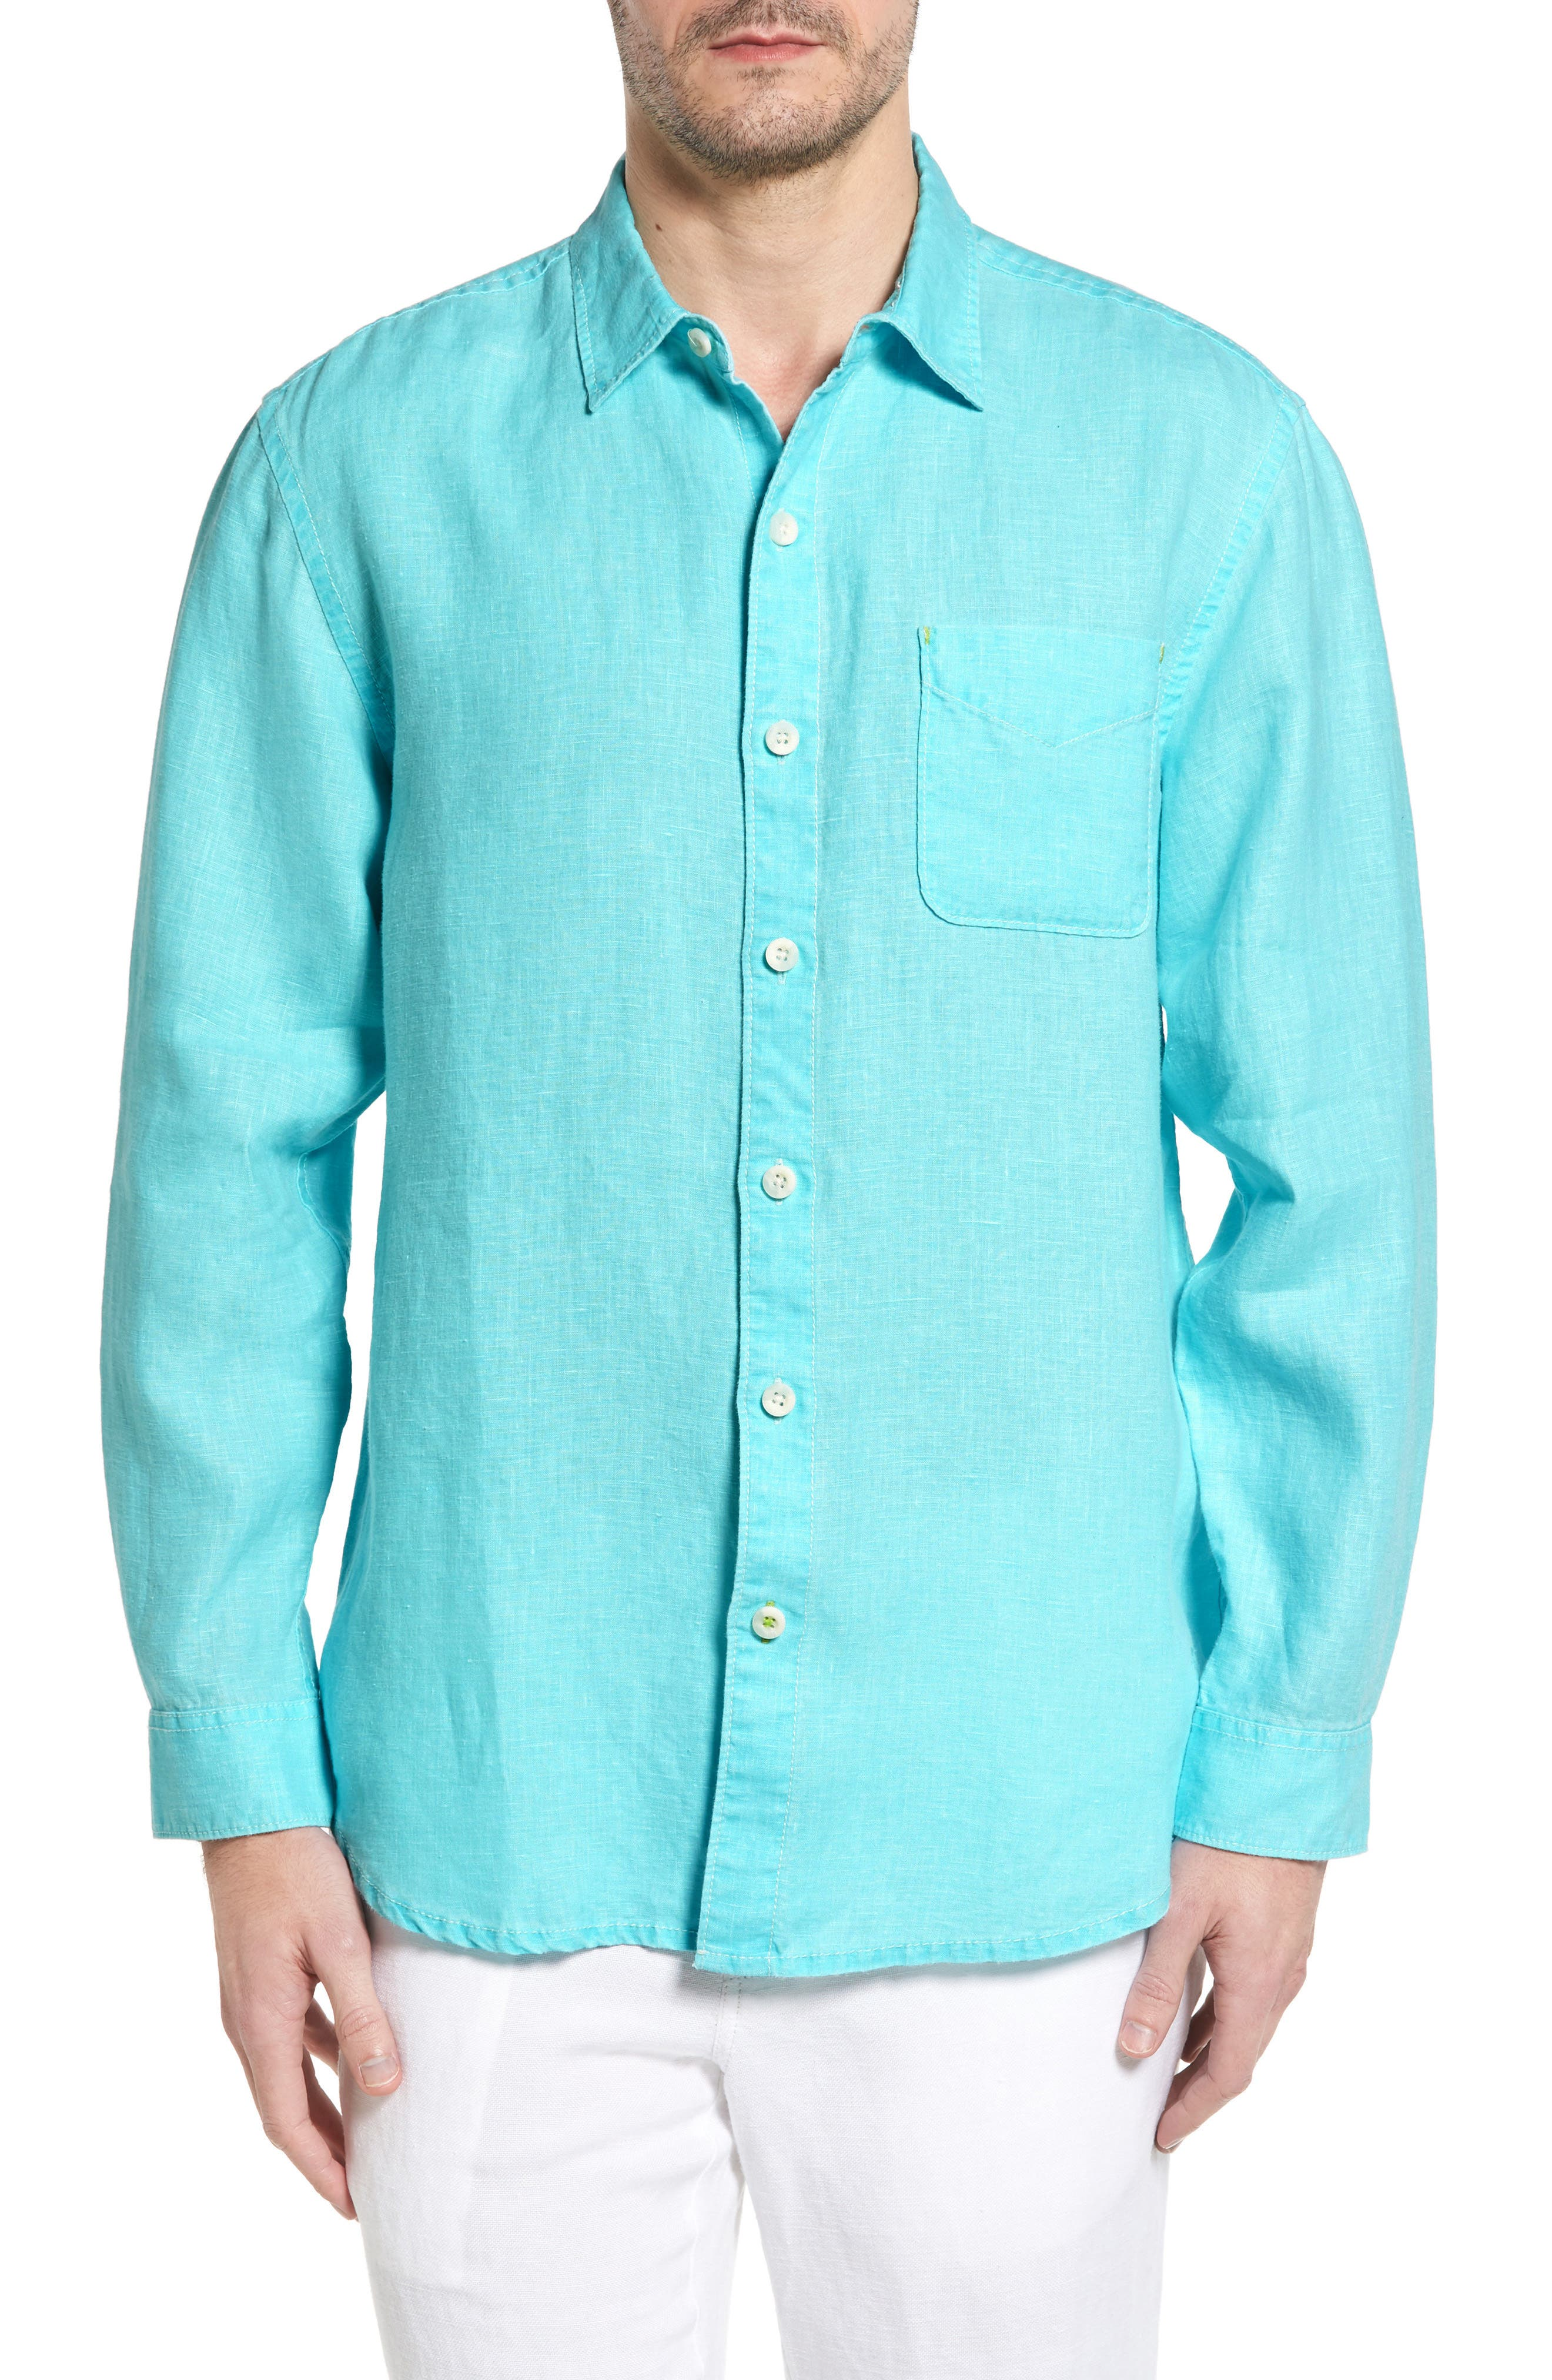 Alternate Image 1 Selected - Tommy Bahama 'Sea Glass Breezer' Original Fit Linen Shirt